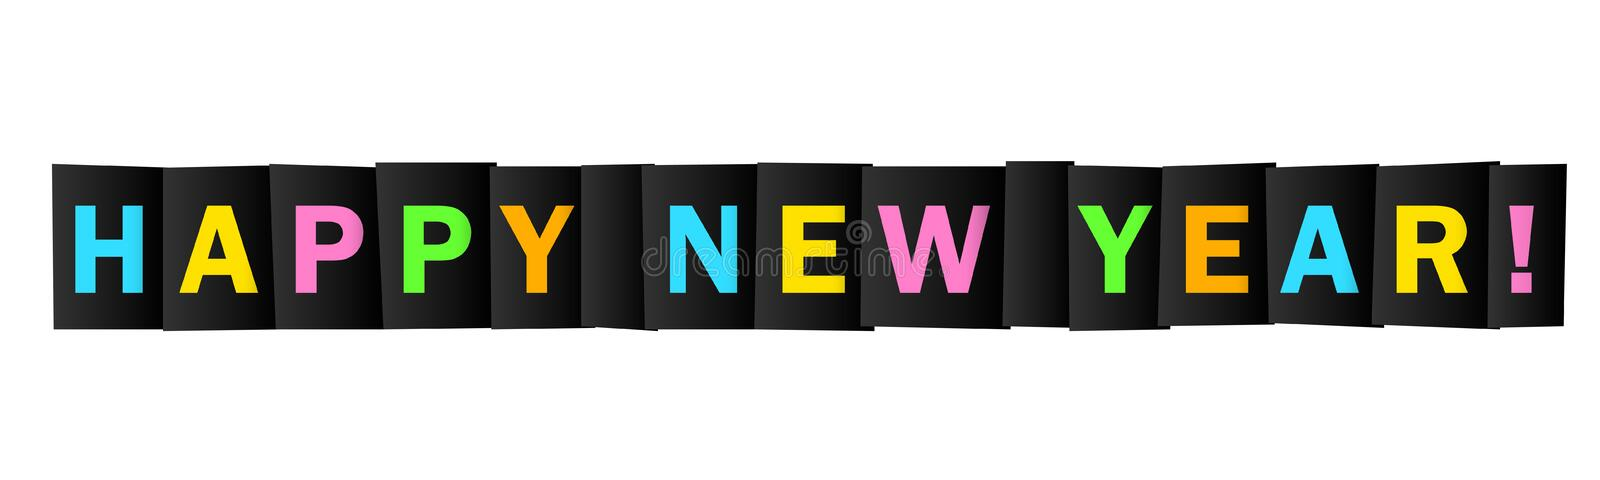 HAPPY NEW YEAR! bright and colorful typography banner royalty free stock photo